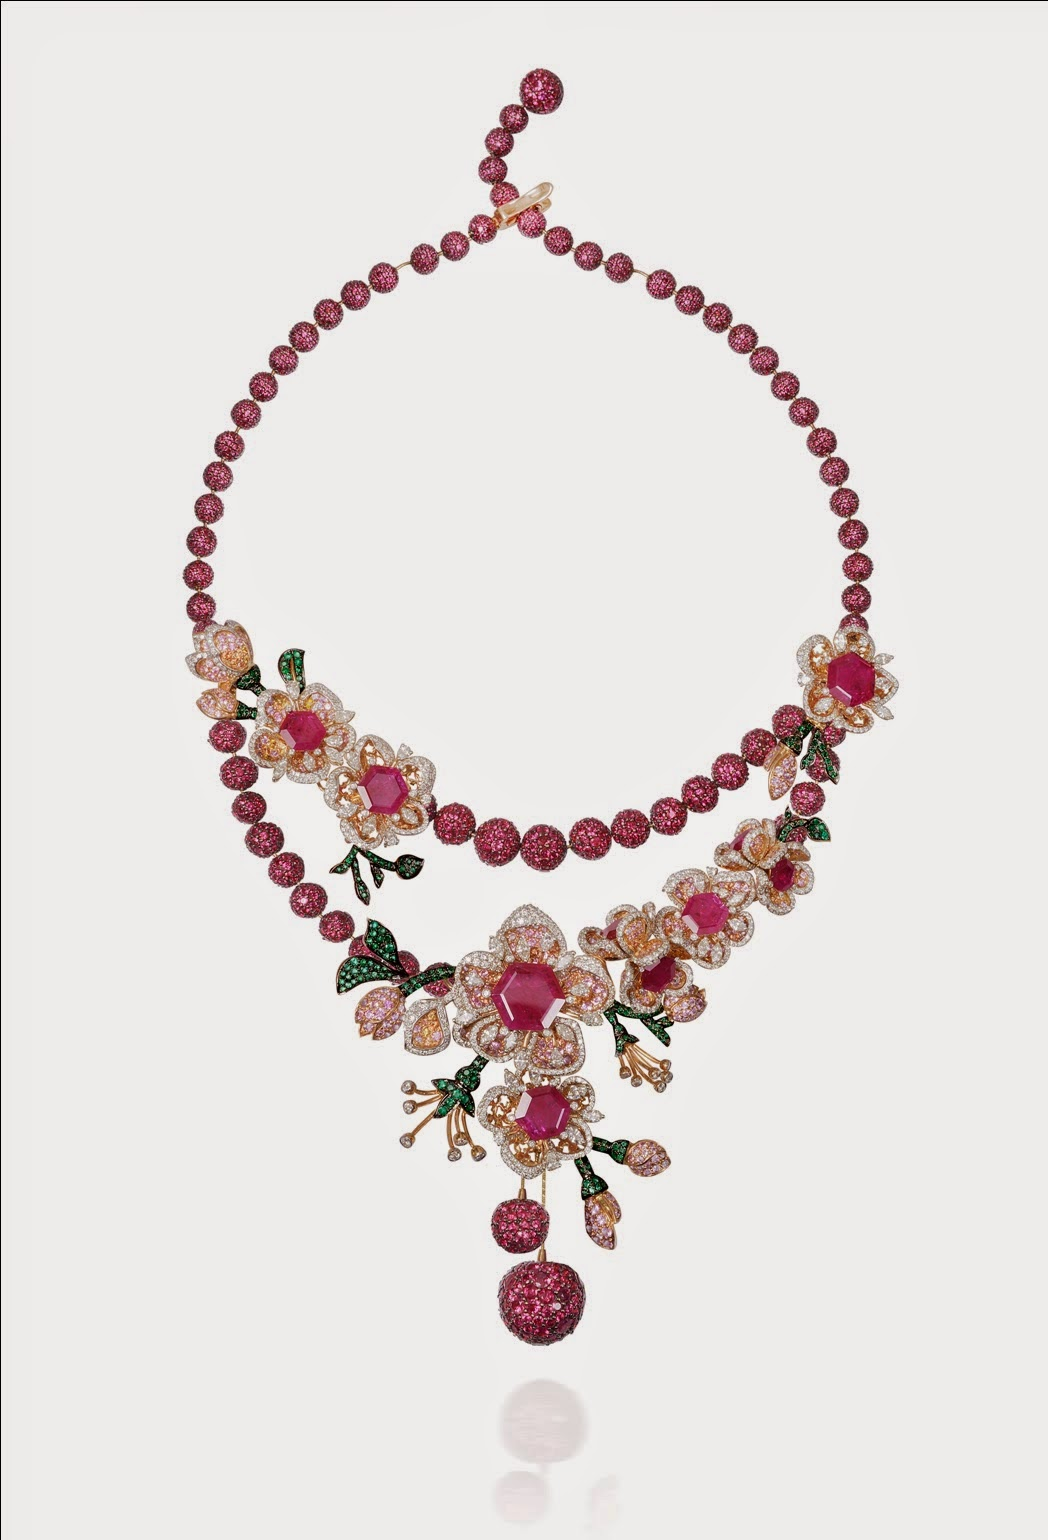 The Parure Necklace by Mirari Cherry Blossom Collection